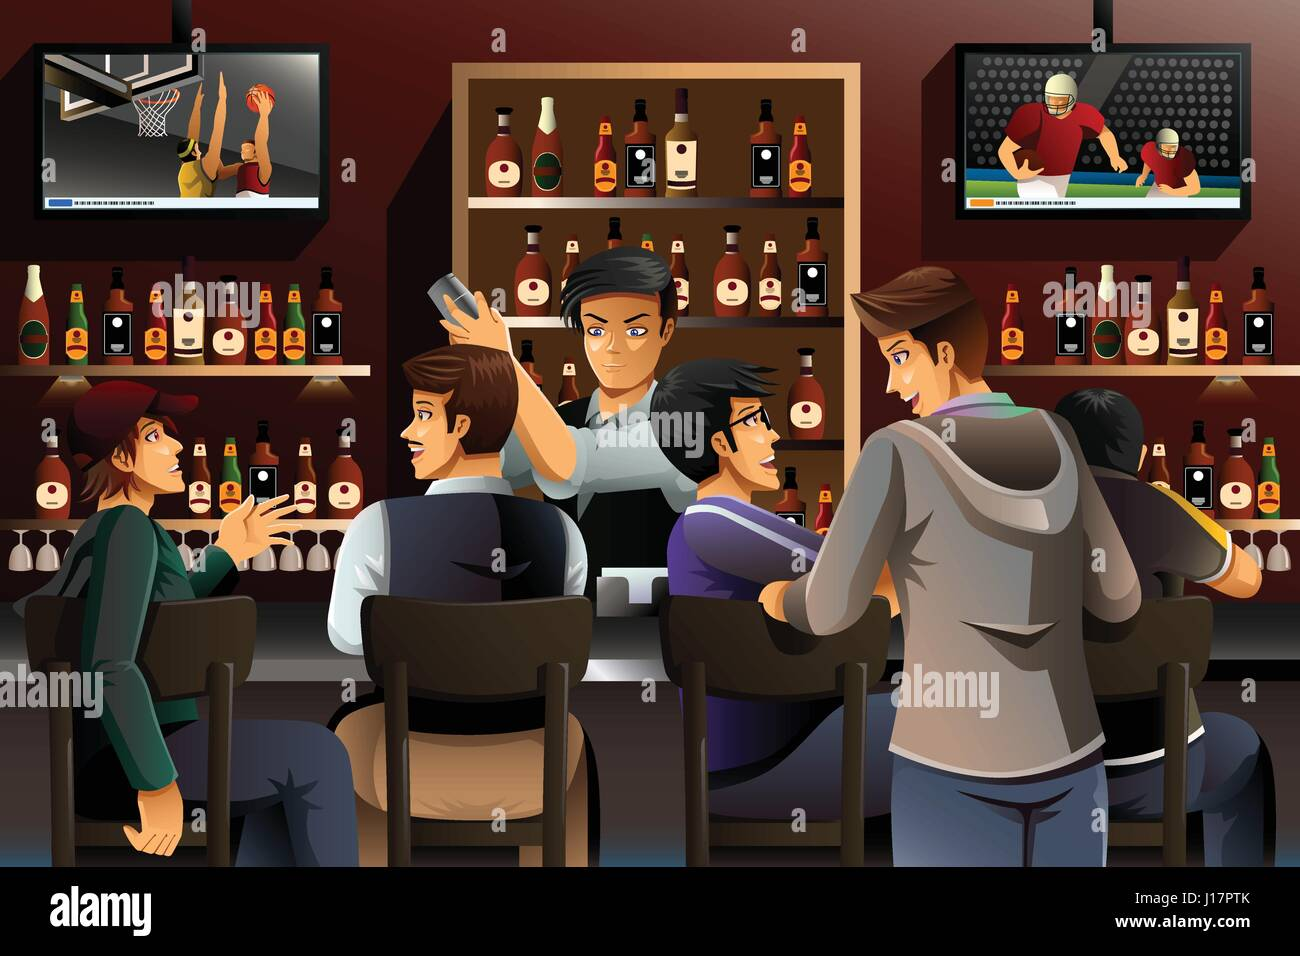 A vector illustration of people hanging out in a bar - Stock Vector